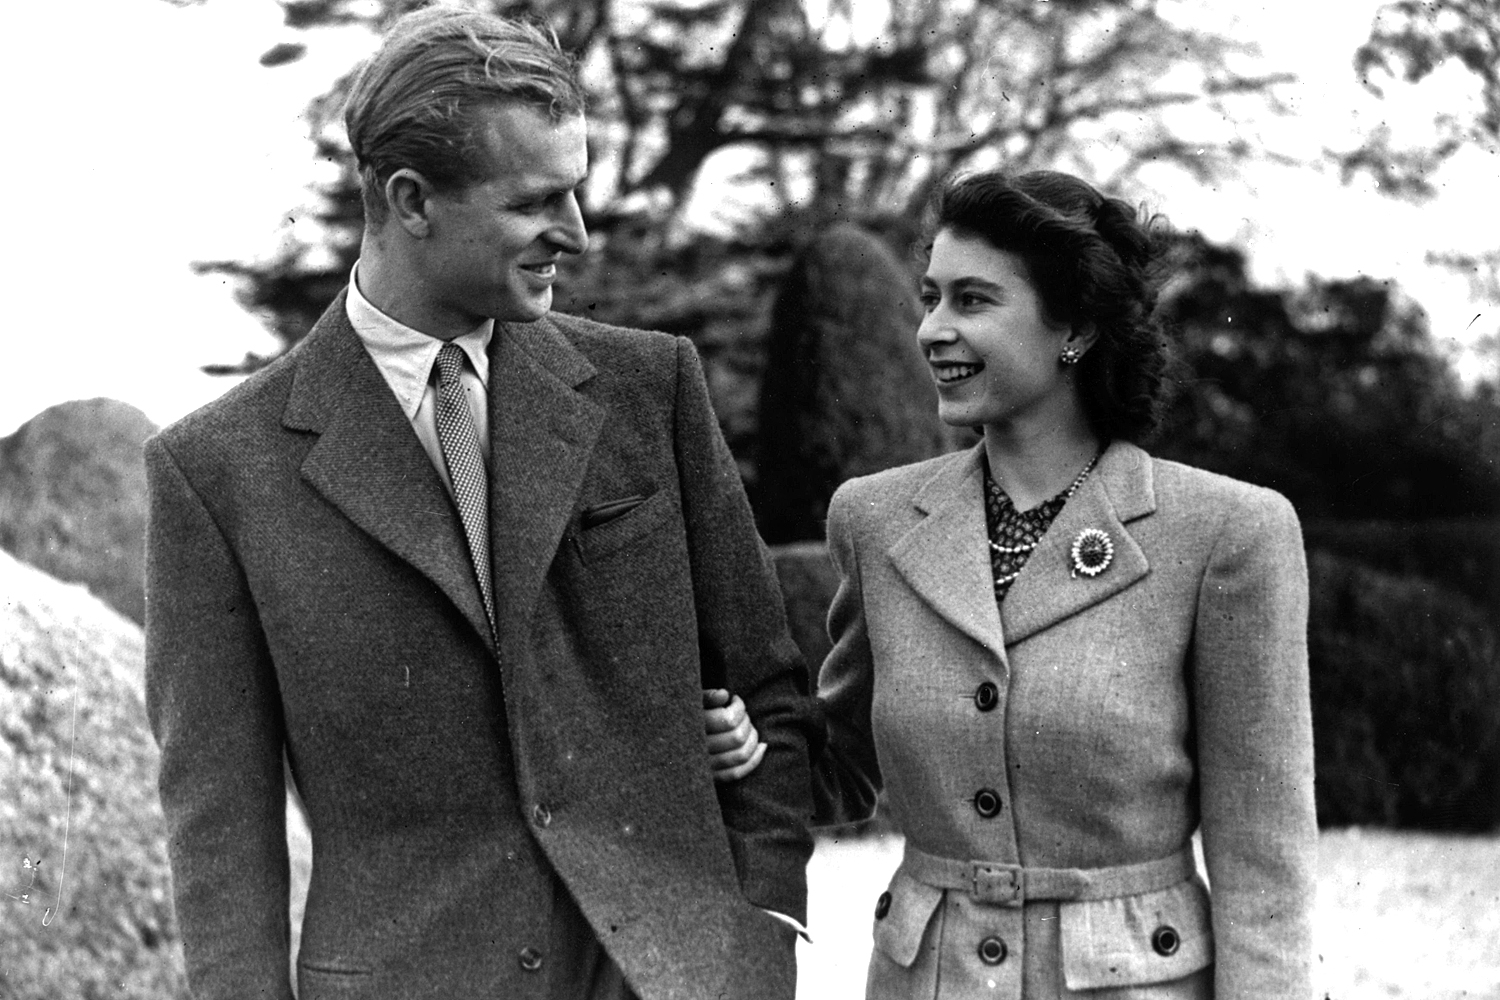 Princess Elizabeth and The Prince Philip, Duke of Edinburgh enjoying a walk during their honeymoon